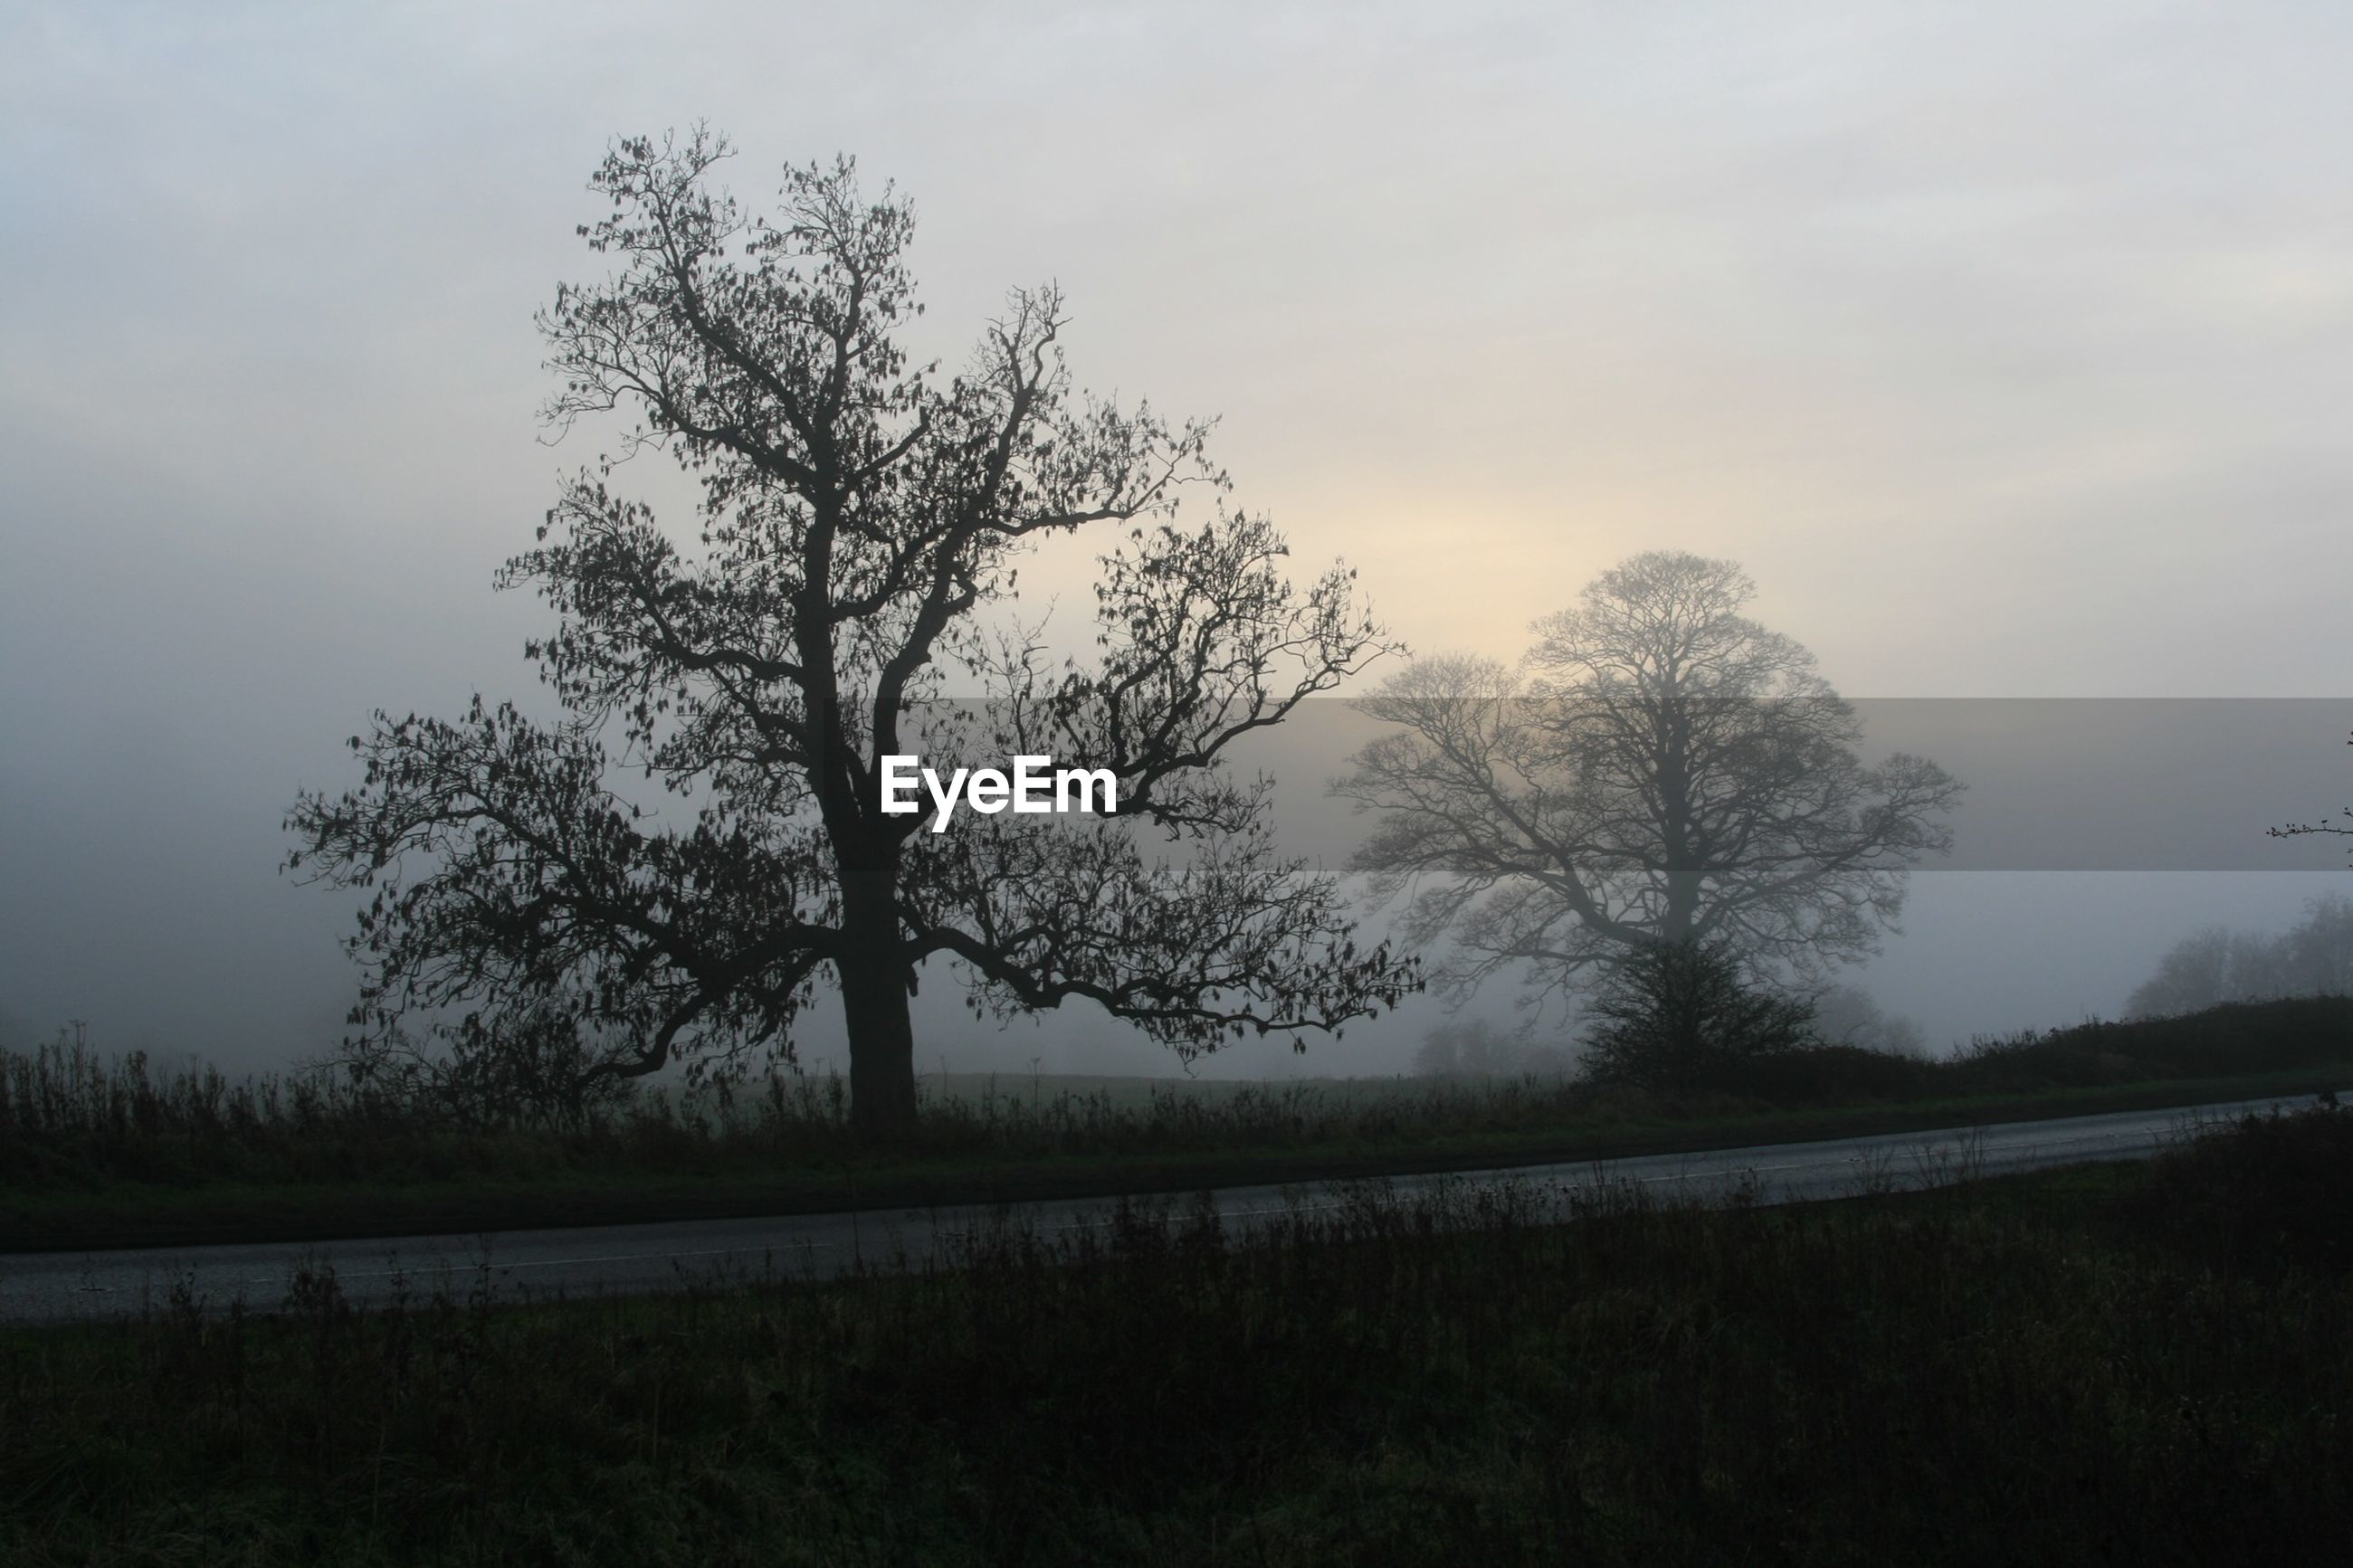 Silhouette trees on field in foggy weather